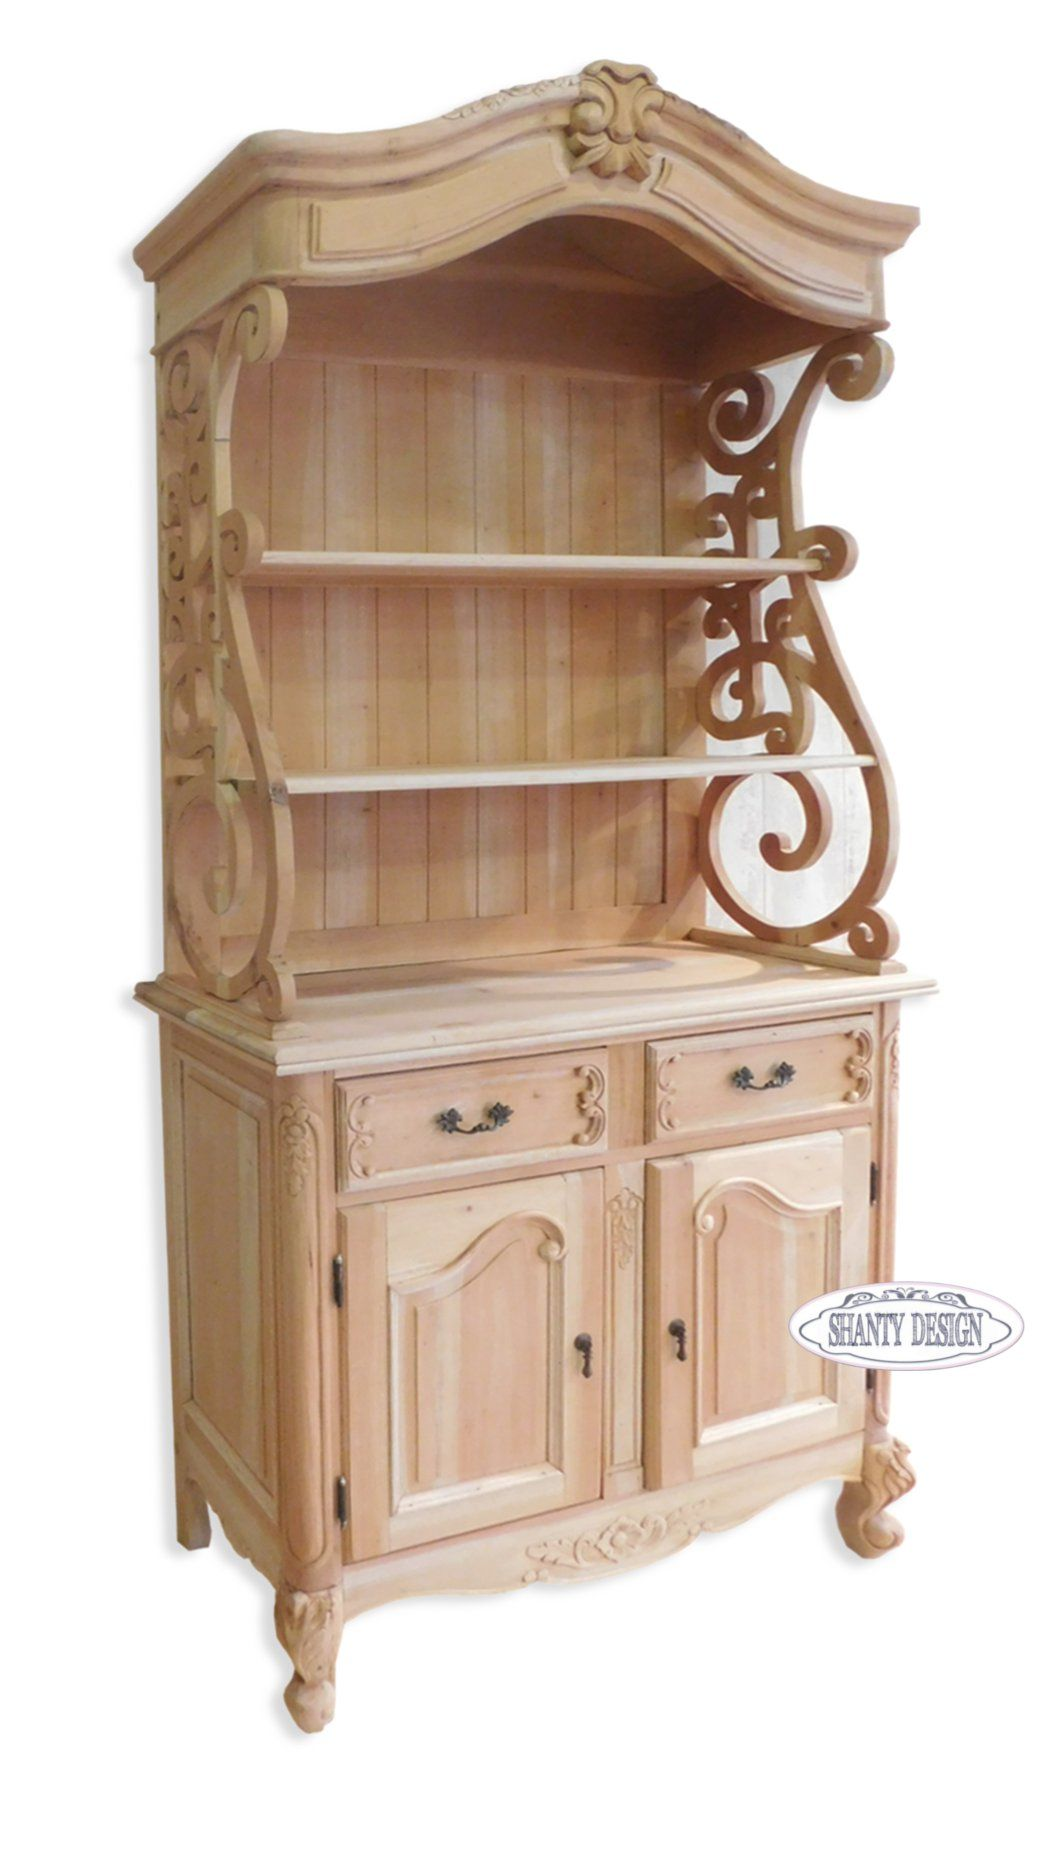 Credenza shabby chic clarissa 1 credenze buffet for Arredamento stile country provenzale